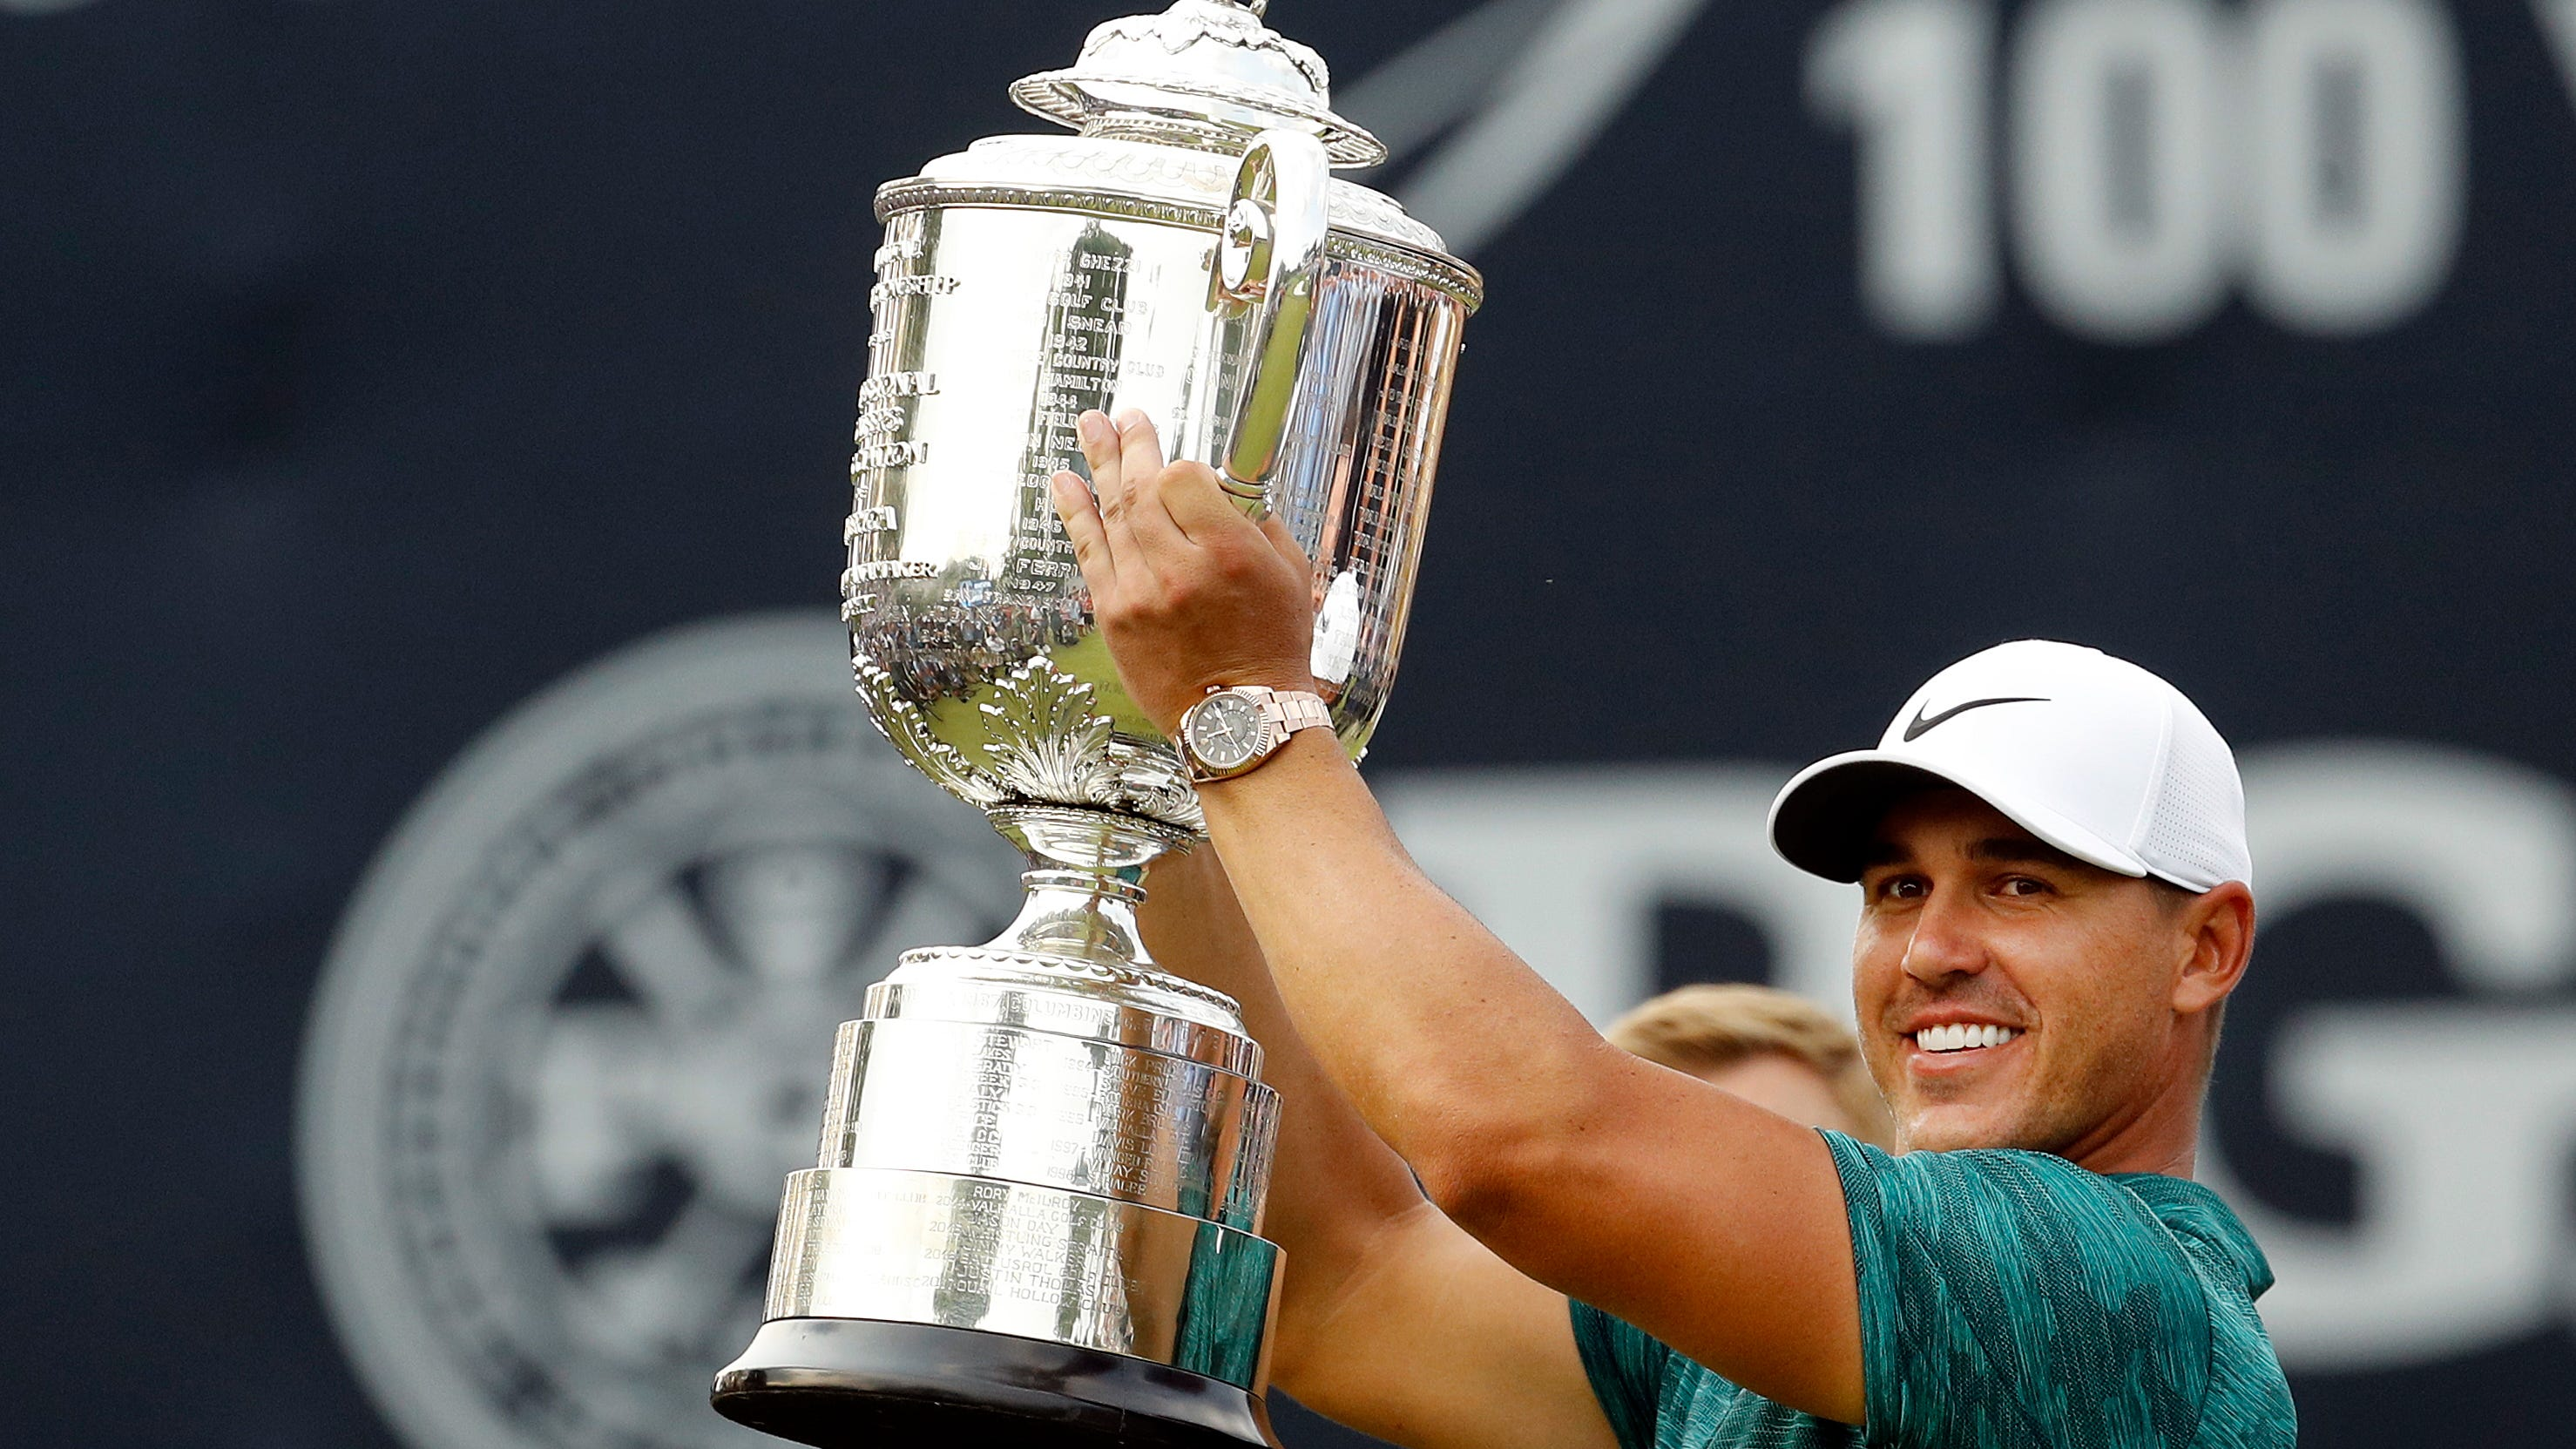 Brooks Koepka's two major titles earn him his first PGA Tour Player of the Year award